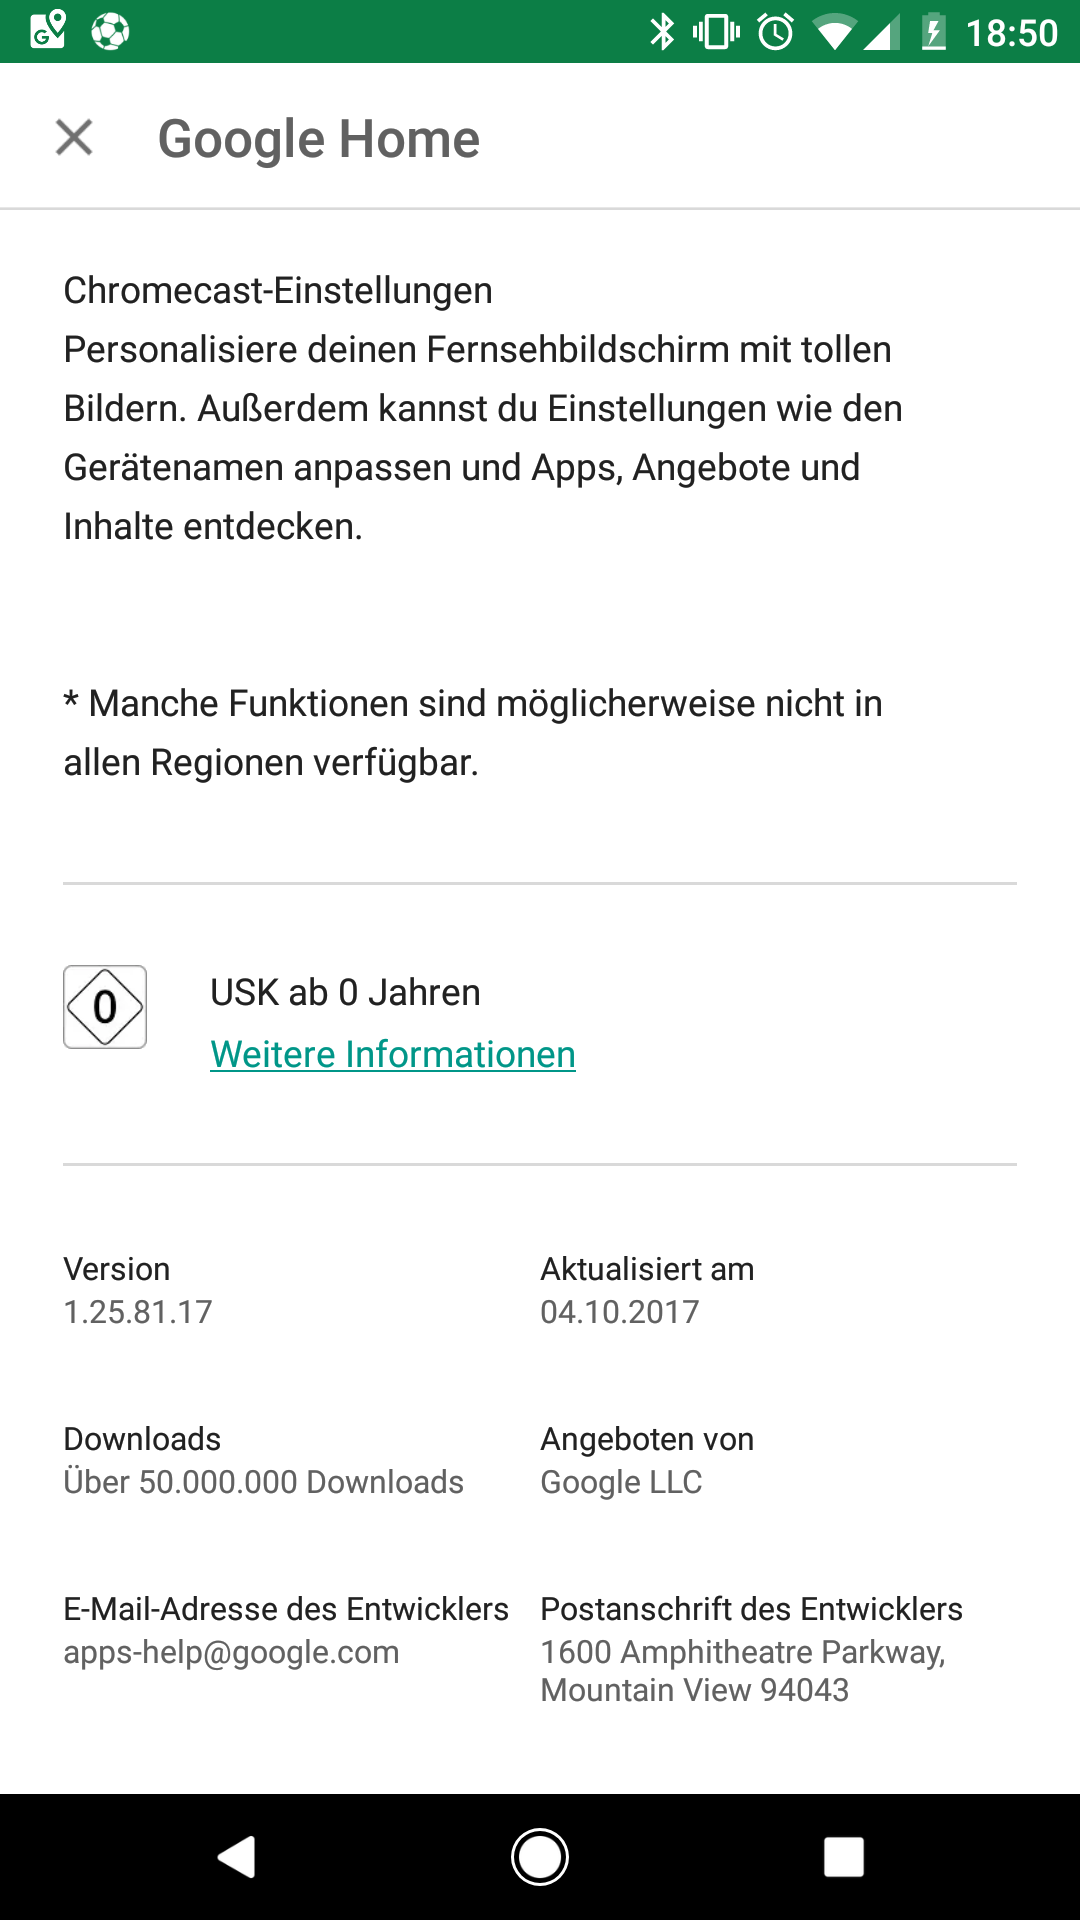 Linking Openhab with Google Home does not show any devices